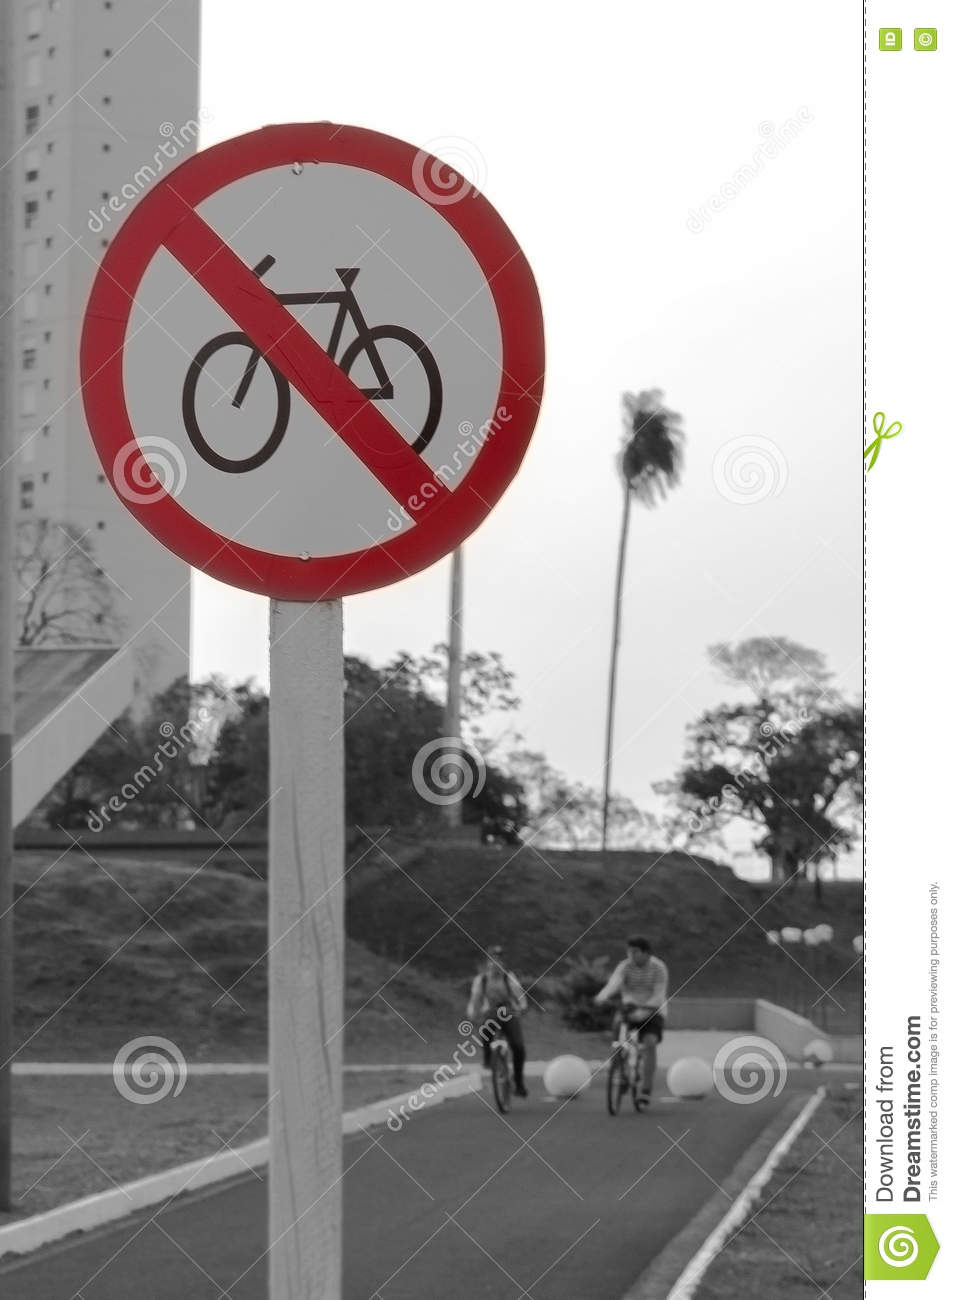 Road Signs For Pedestrians And Cyclists Royalty Free Stock